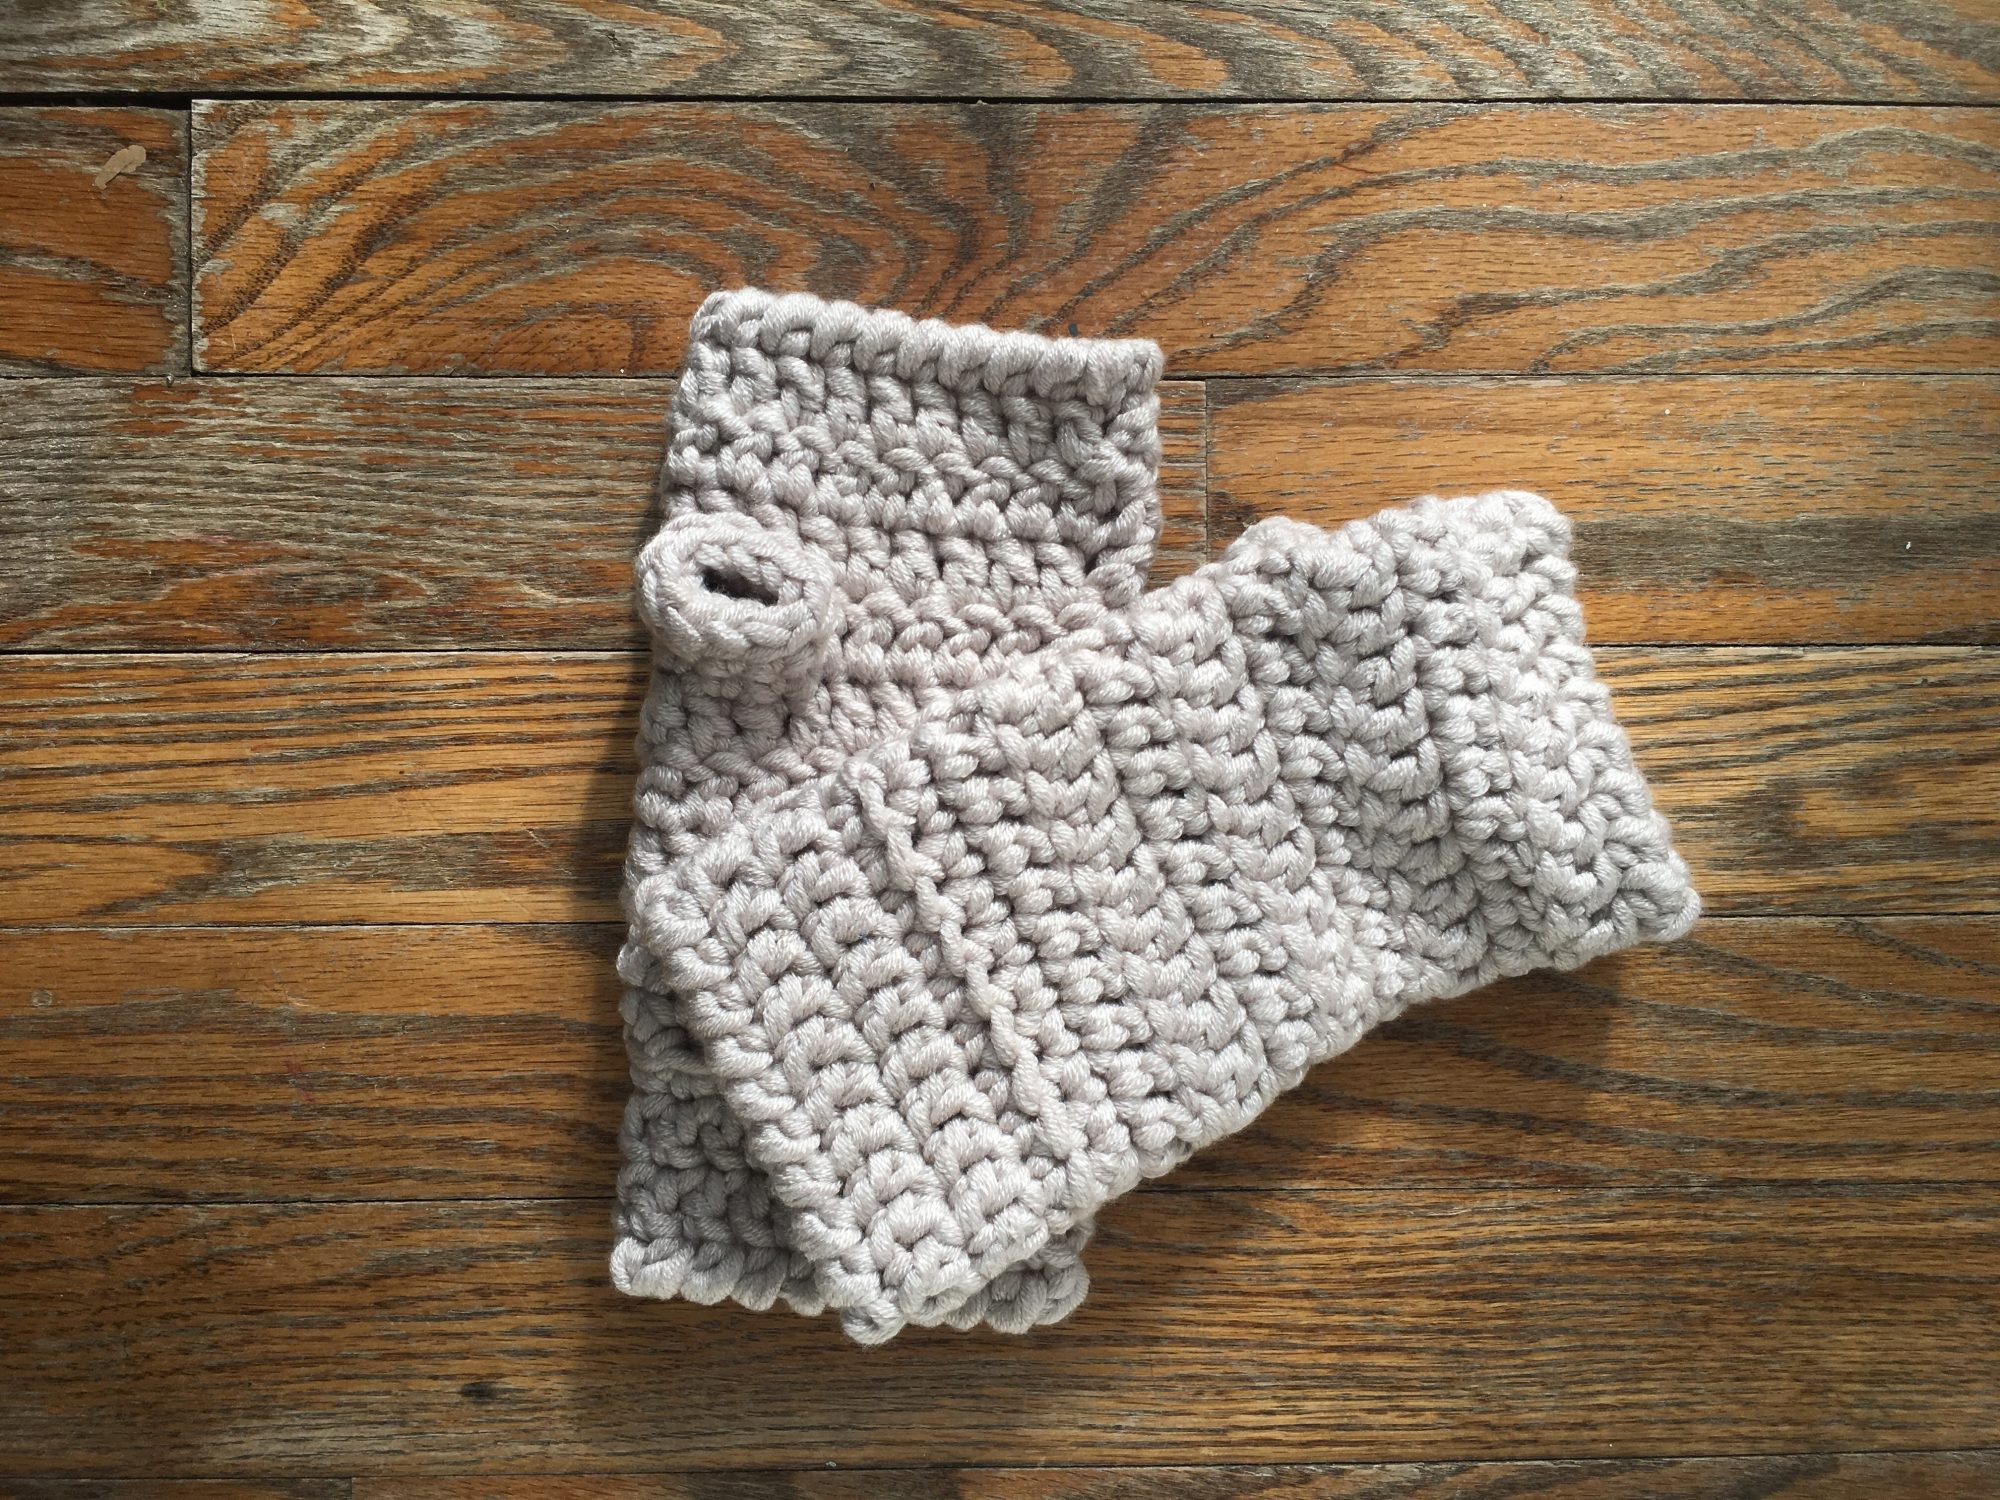 Fingerless Mitts made with a bulky yarn.